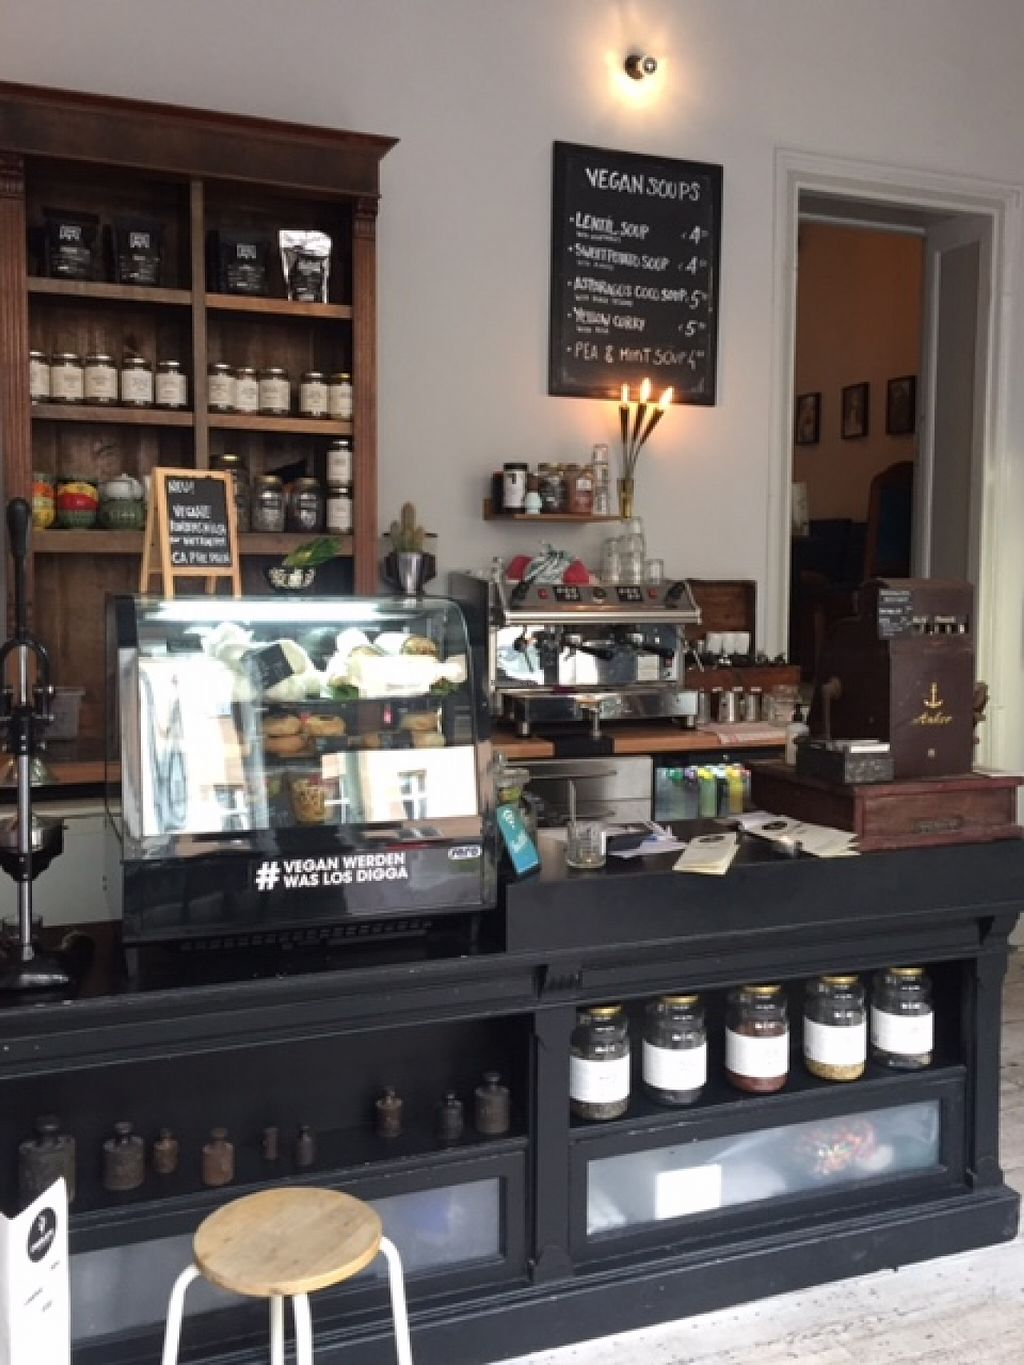 """Photo of CLOSED: Charlie's Vegan Food & Coffee  by <a href=""""/members/profile/Dakini05"""">Dakini05</a> <br/>Counter <br/> June 12, 2016  - <a href='/contact/abuse/image/50935/153663'>Report</a>"""